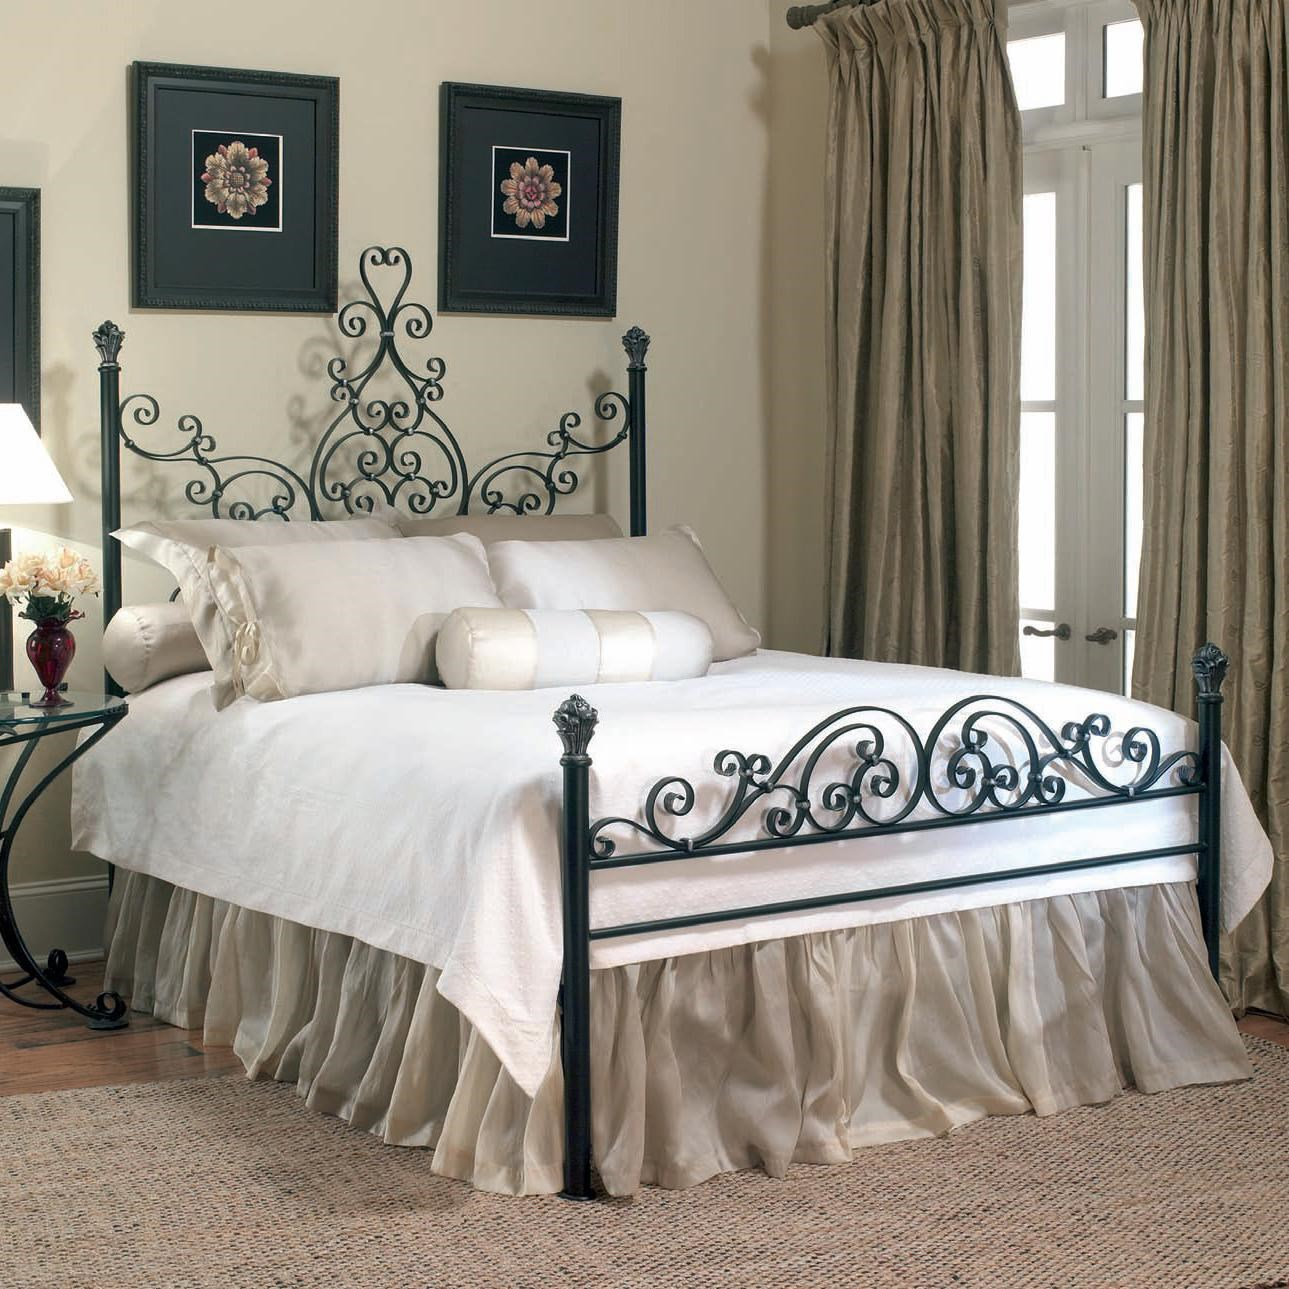 Image Gallery Iron Metal Beds